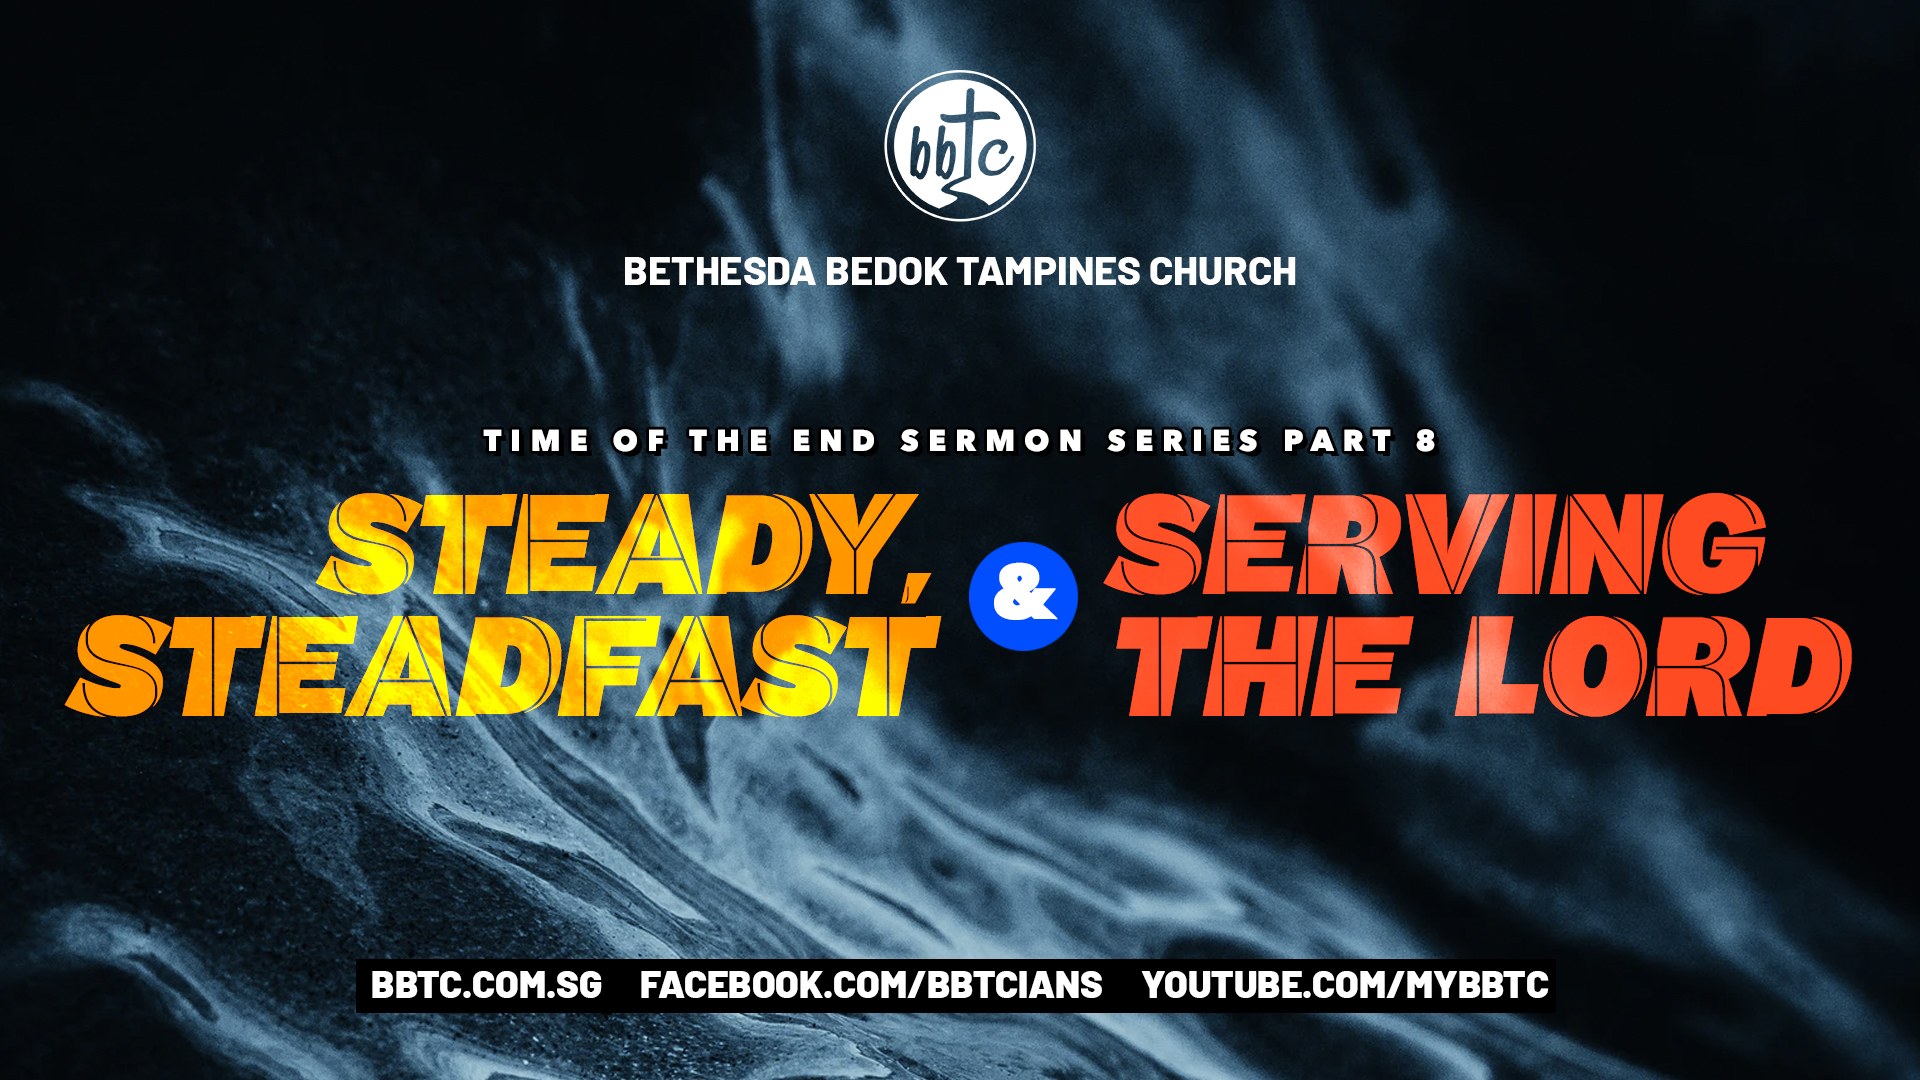 STEADY, STEADFAST & SERVING THE LORD